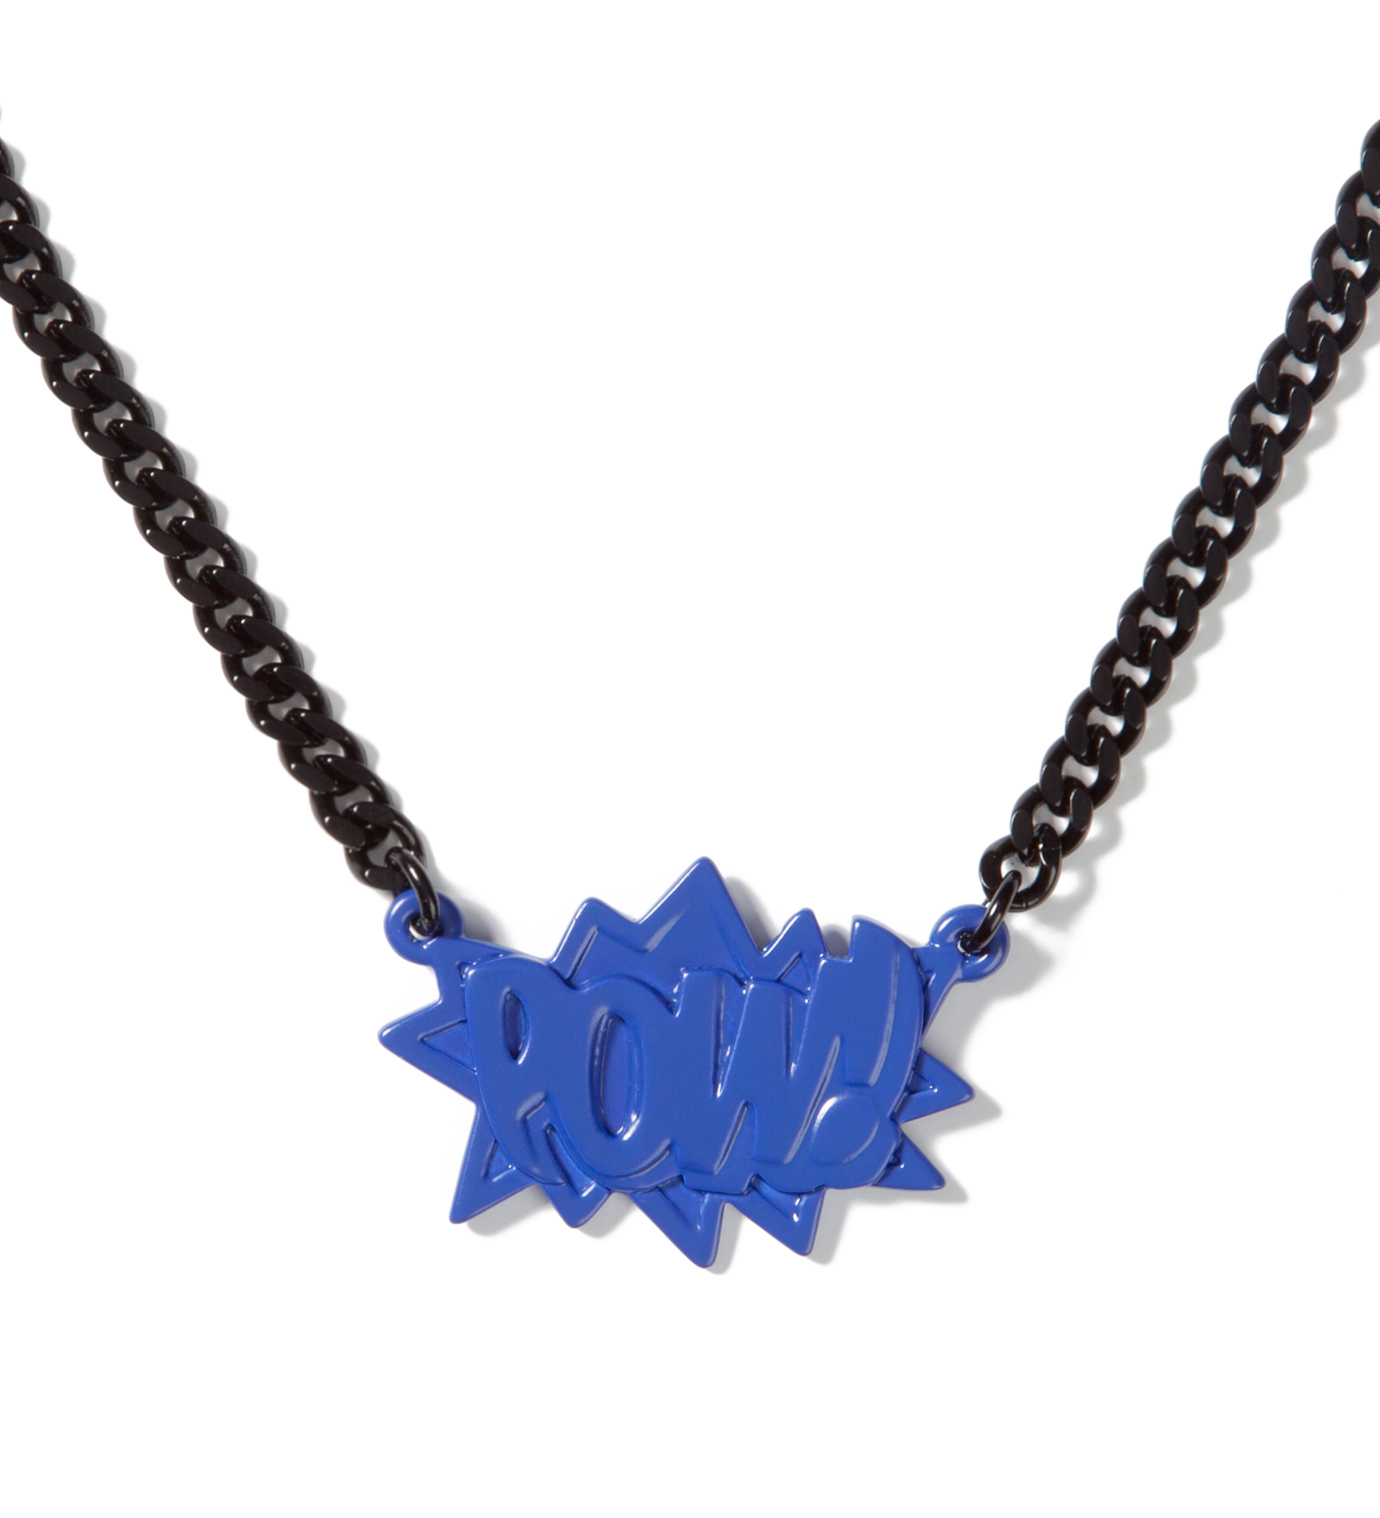 AMBUSH Blue/Black POW! Chain Season6